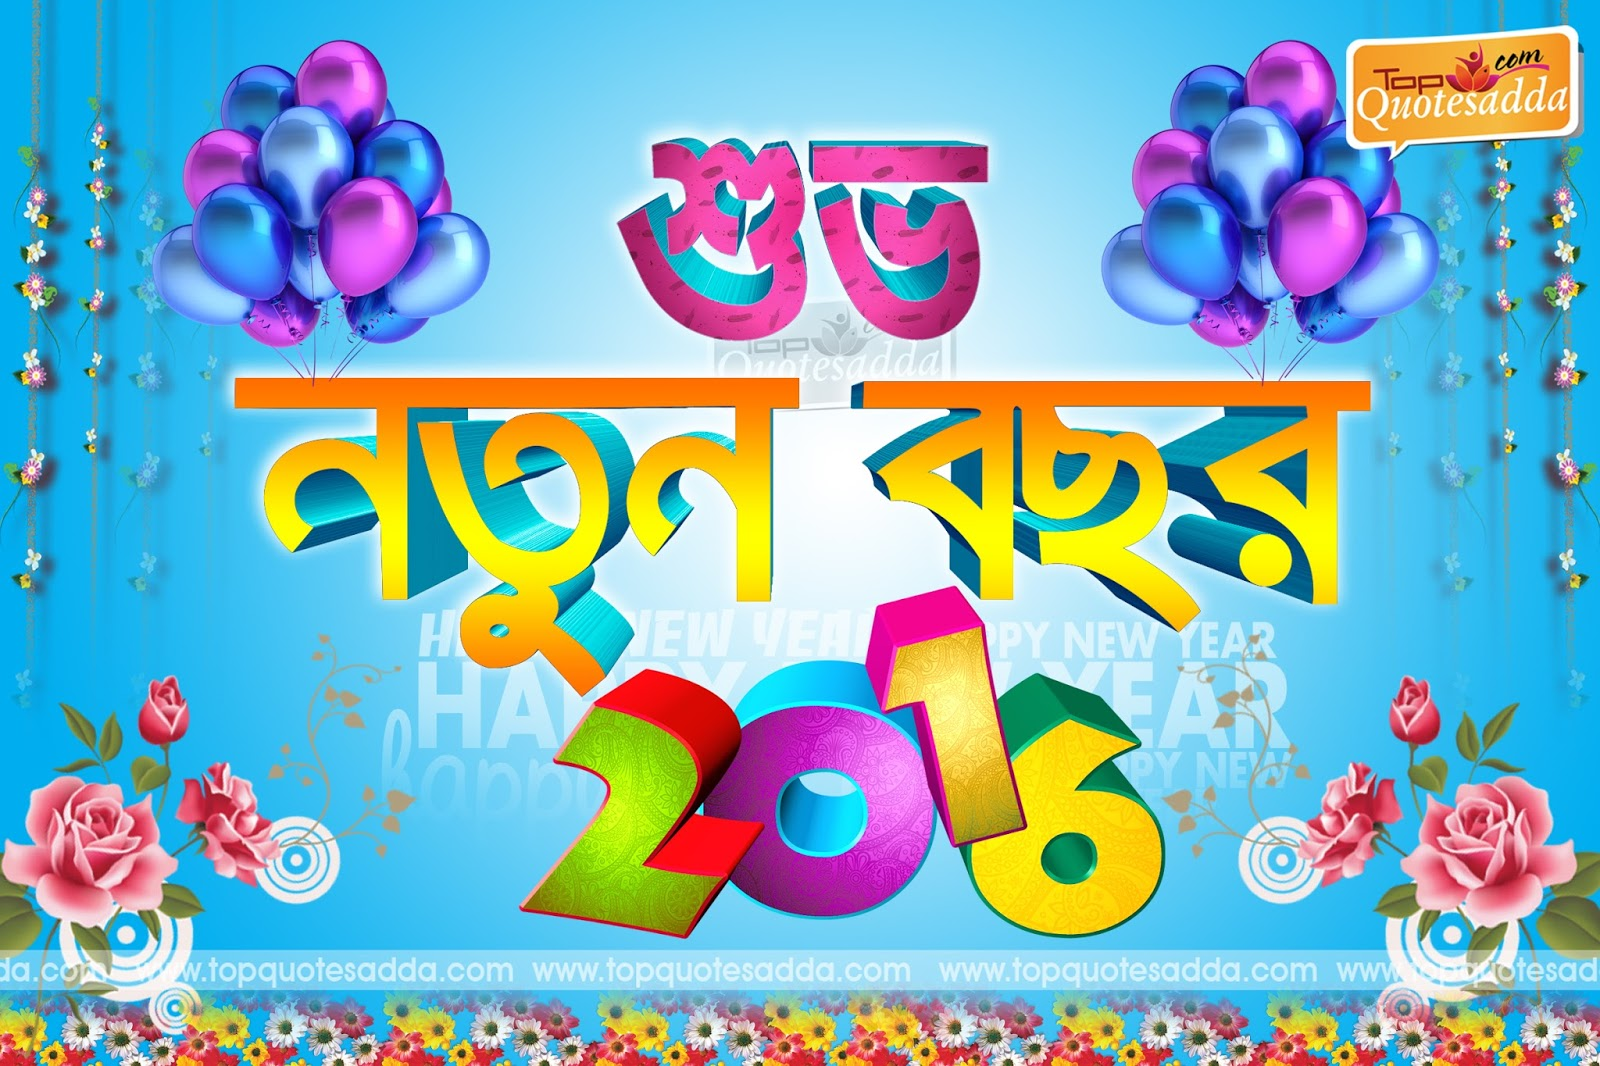 Happy new year 2016 bengali greetings and quotes topquotesadda happy new year bengali wishes quotes topquotesadda m4hsunfo